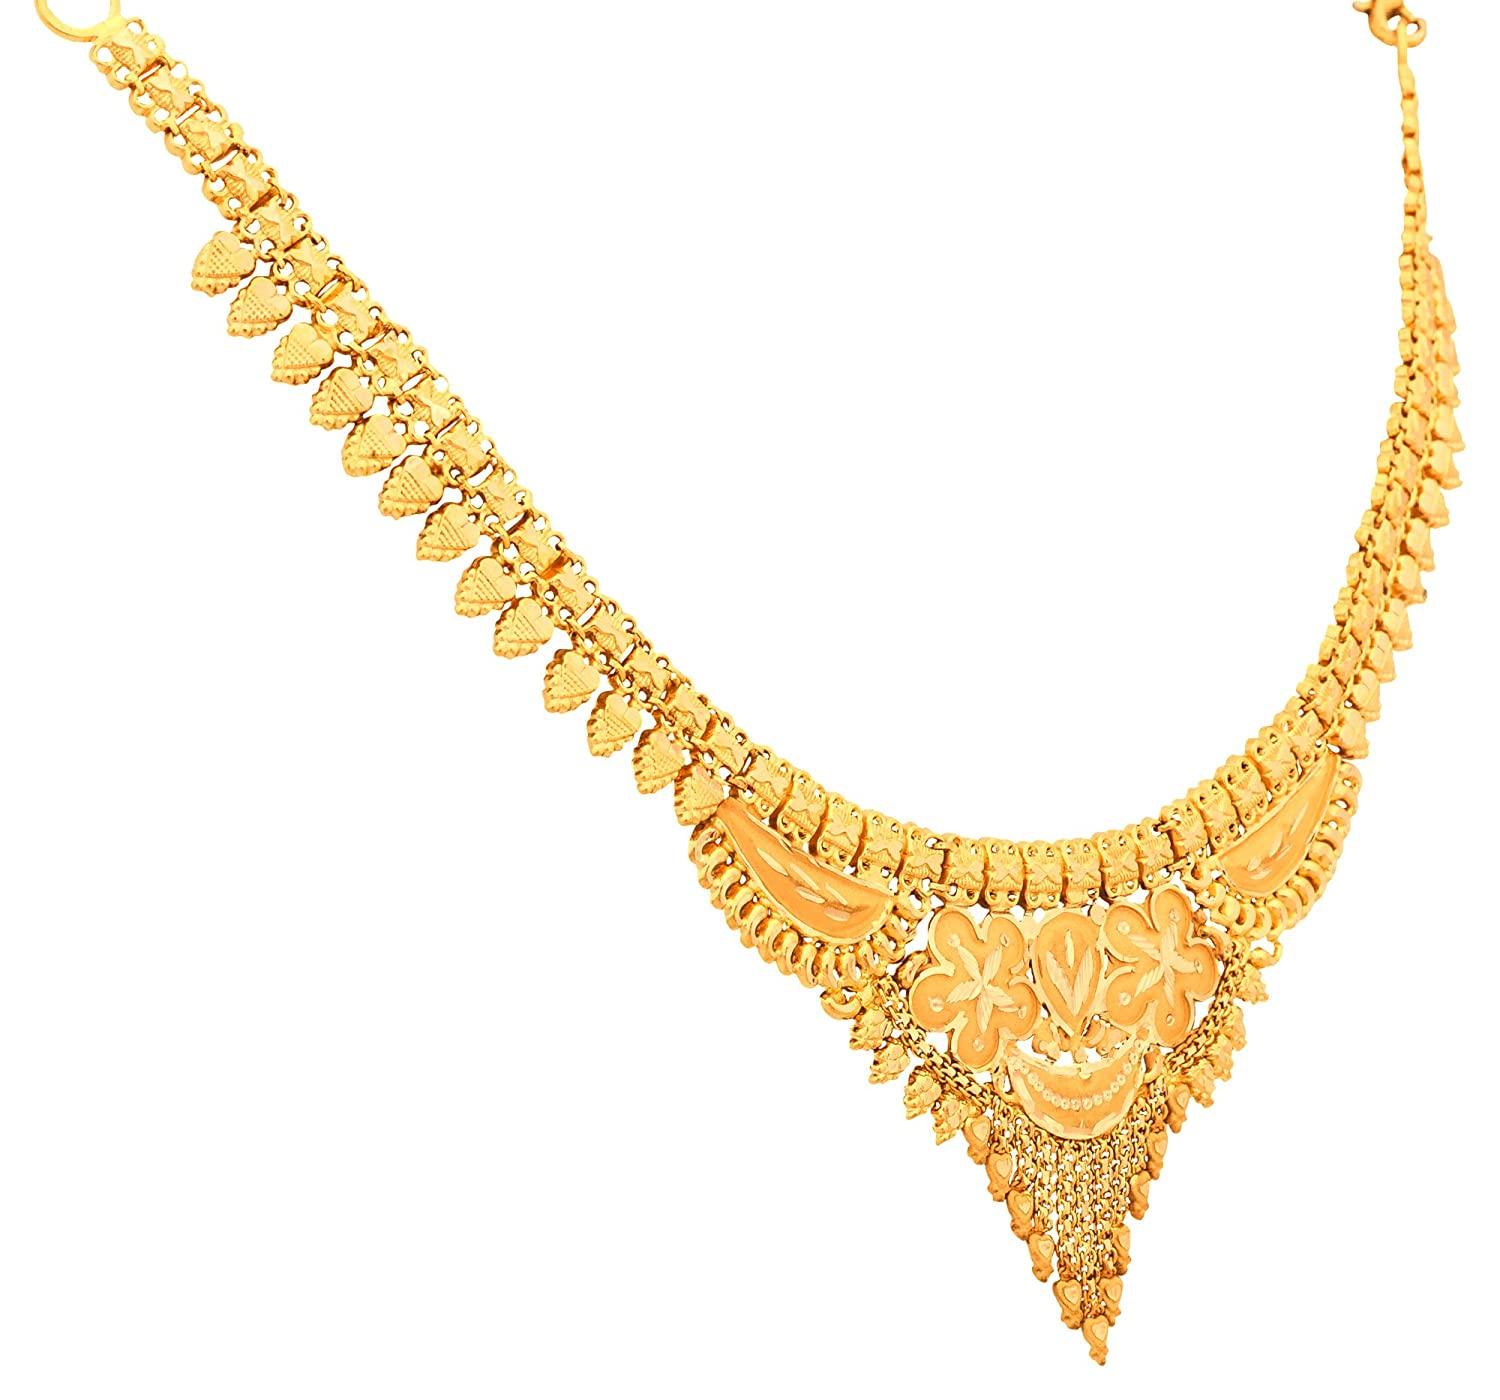 Buy senco gold 22k yellow gold chain necklace online at low prices buy senco gold 22k yellow gold chain necklace online at low prices in india amazon jewellery store amazon aloadofball